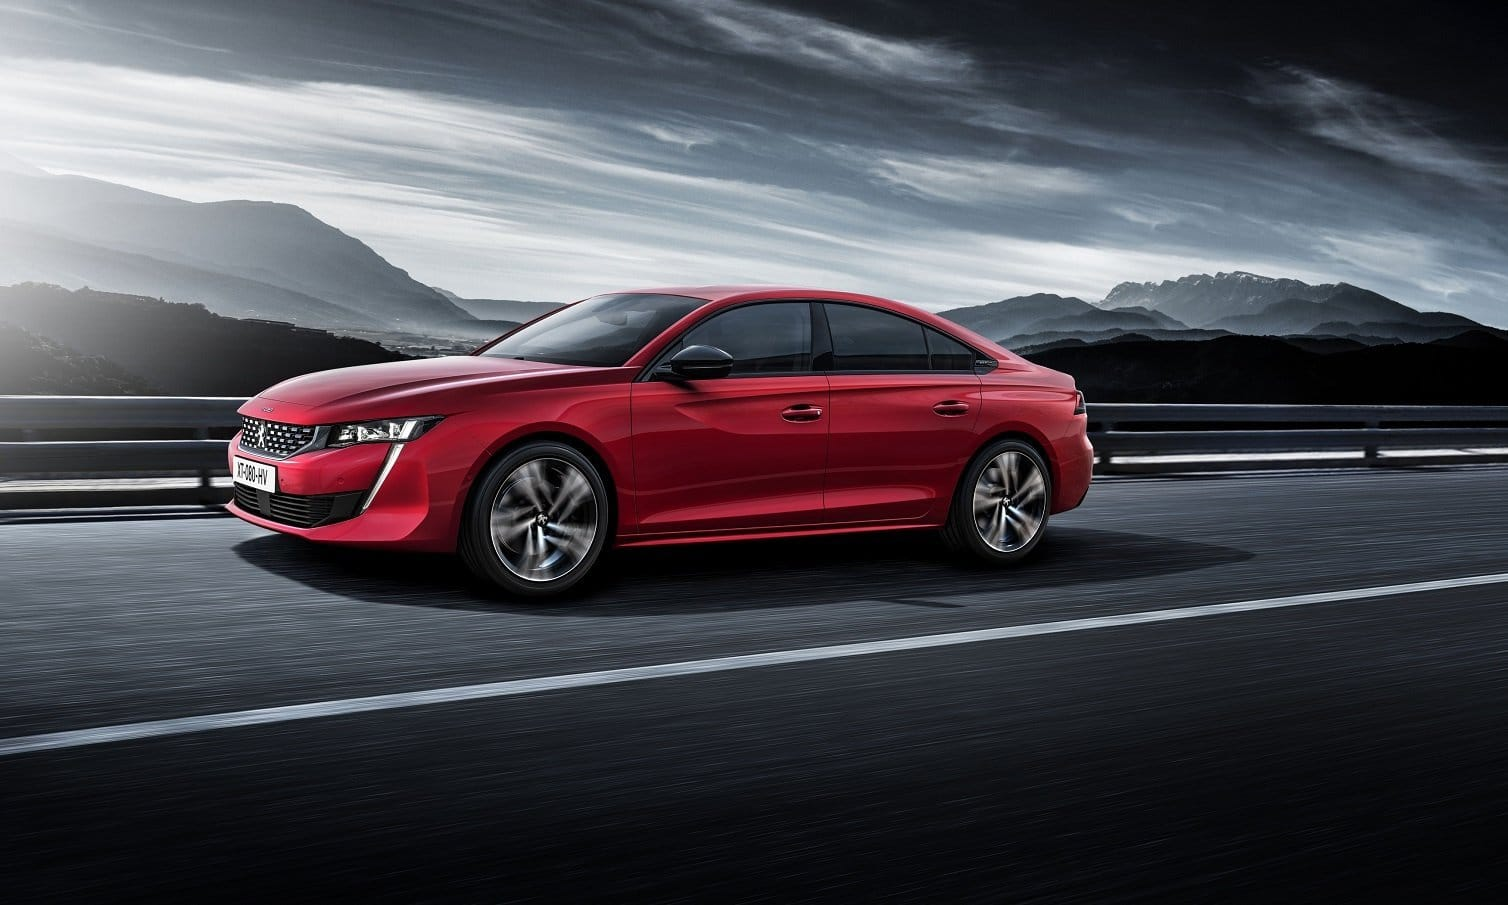 Peugeot's new generation 508 is a different lion altogether